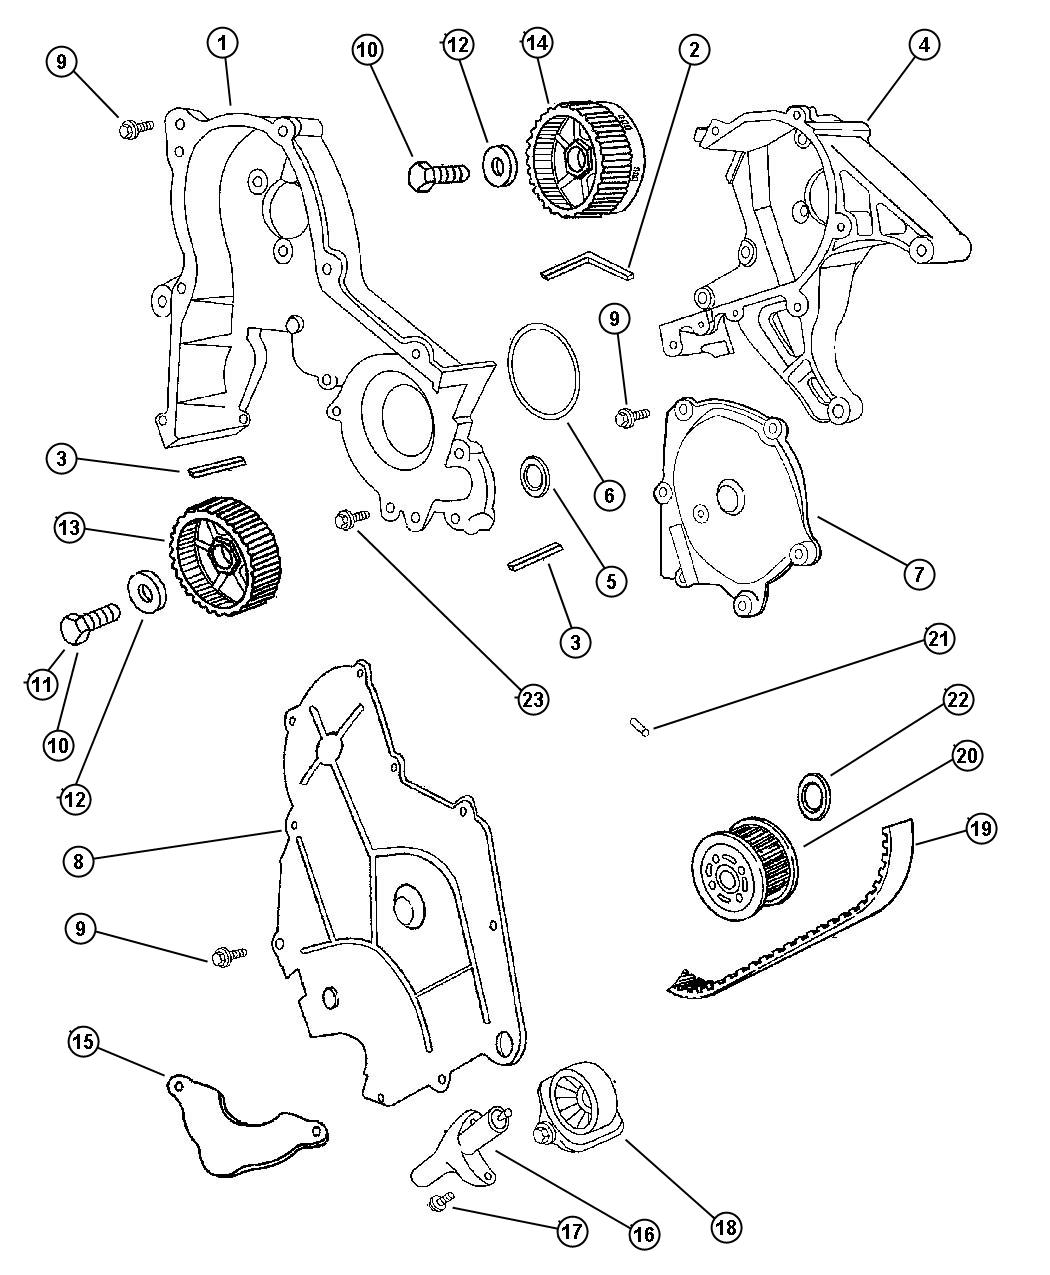 Service manual [2000 Chrysler Lhs Timing Belt Change